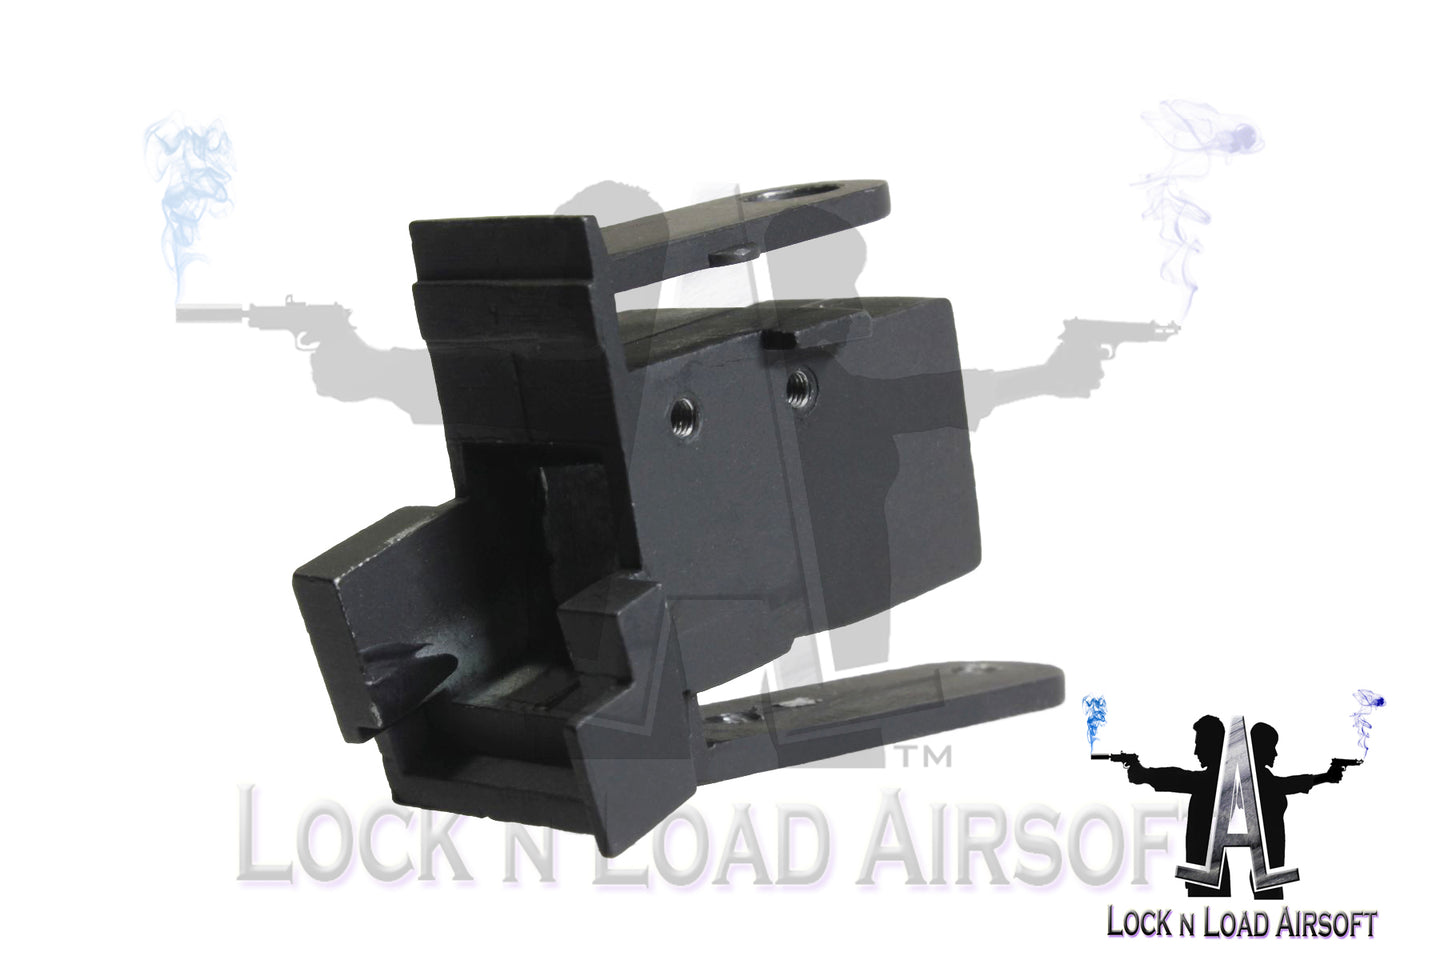 Full Metal AK Lower Receiver Stock Connection Mount Replacement | Conversion